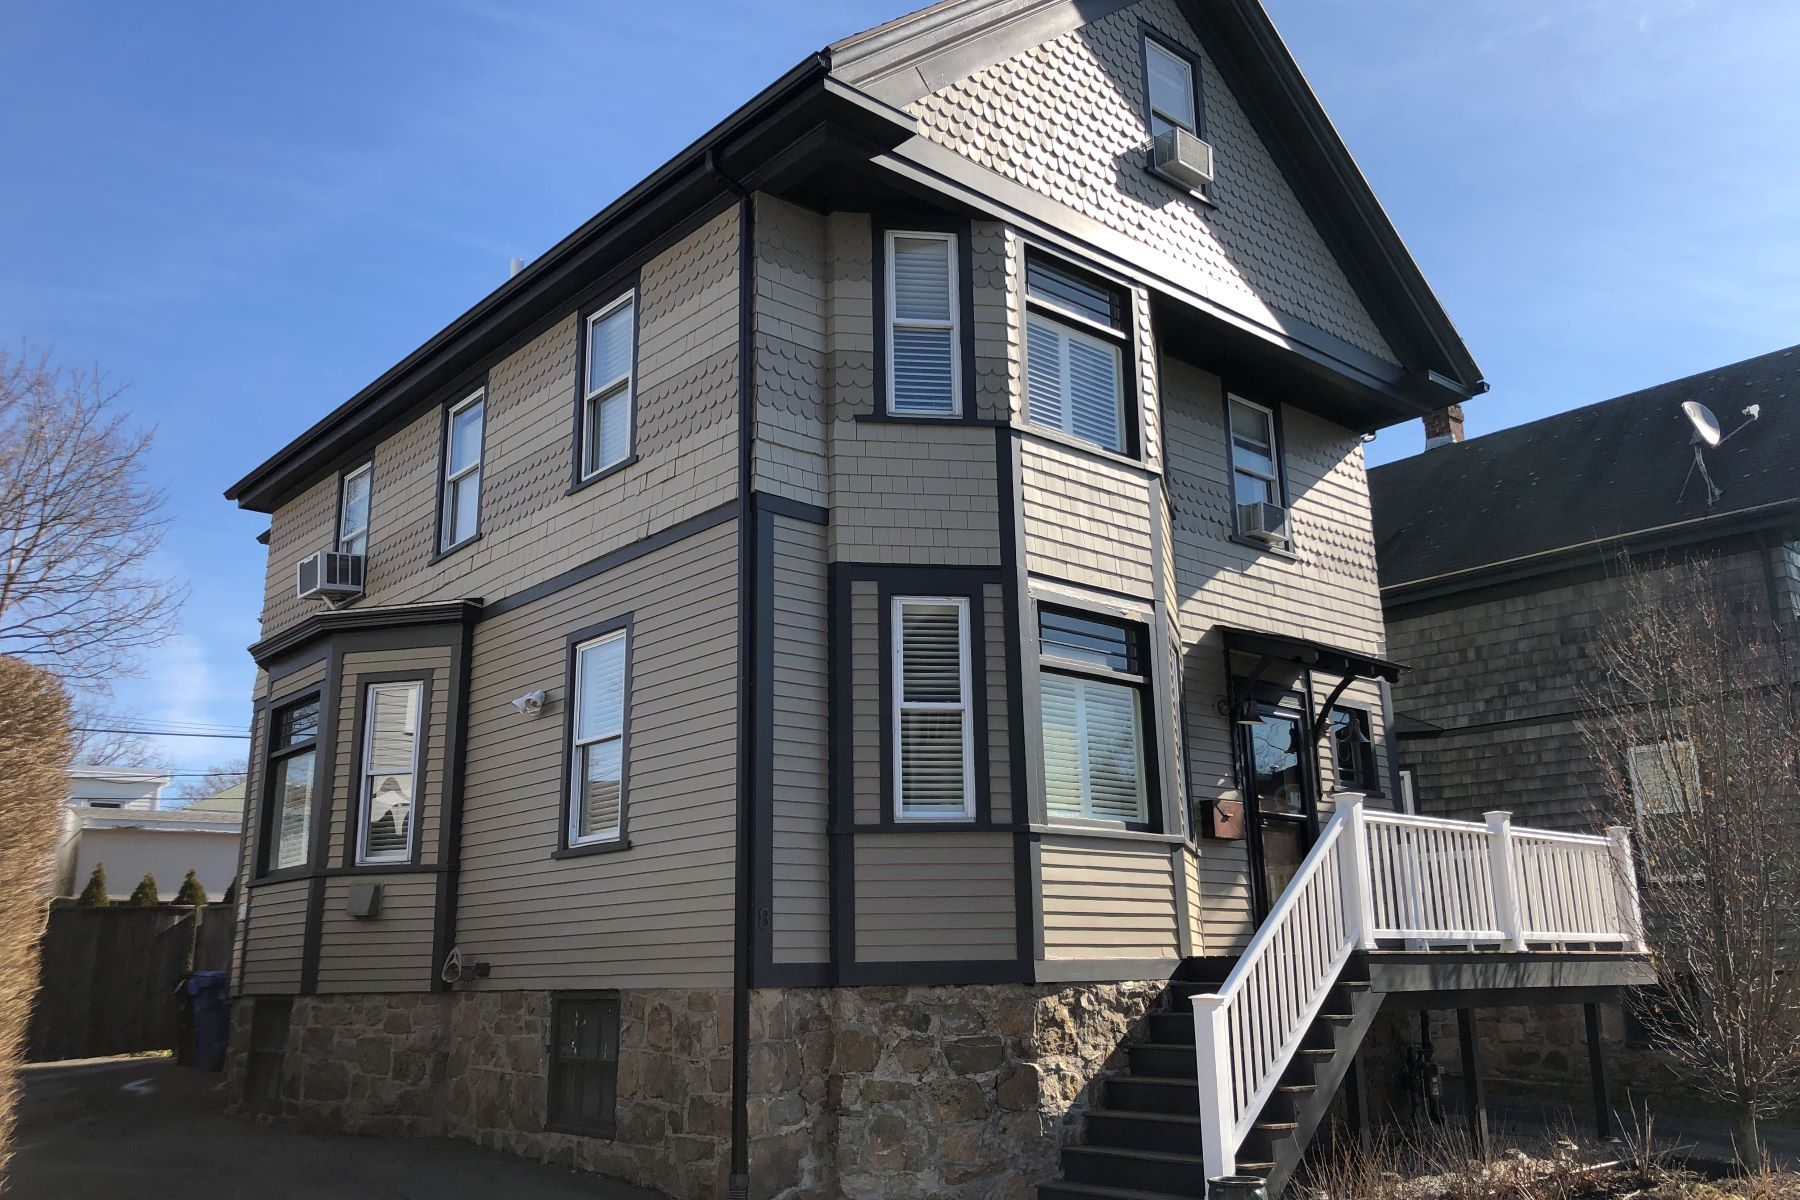 Single Family Homes for Sale at Classic Cottage 8 Elliott Place Newport, Rhode Island 02840 United States